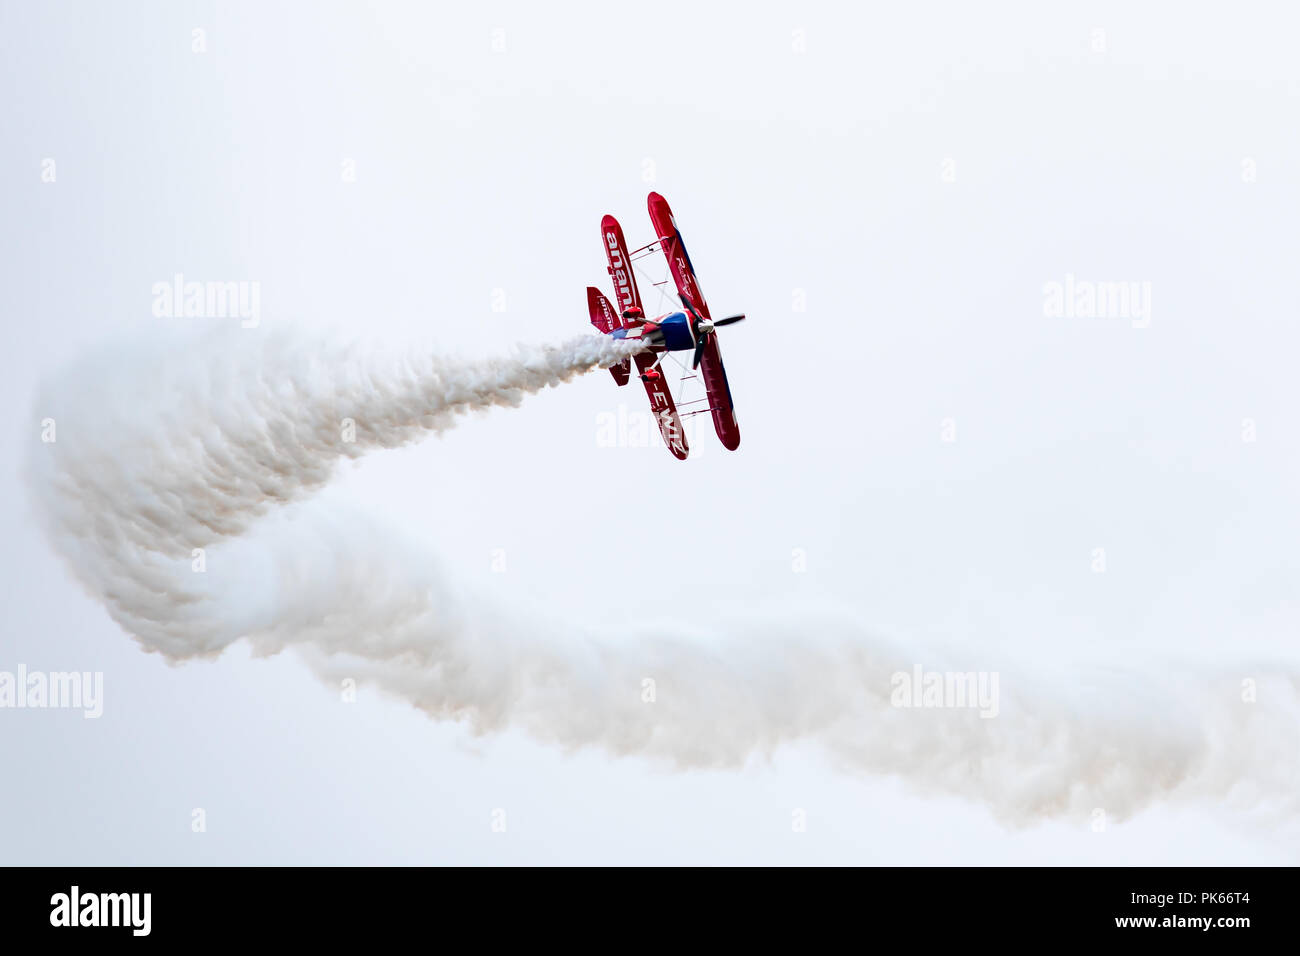 A Pitts Special S2S Biplane banks sharply leaving a curving plume of white smoke - Stock Image